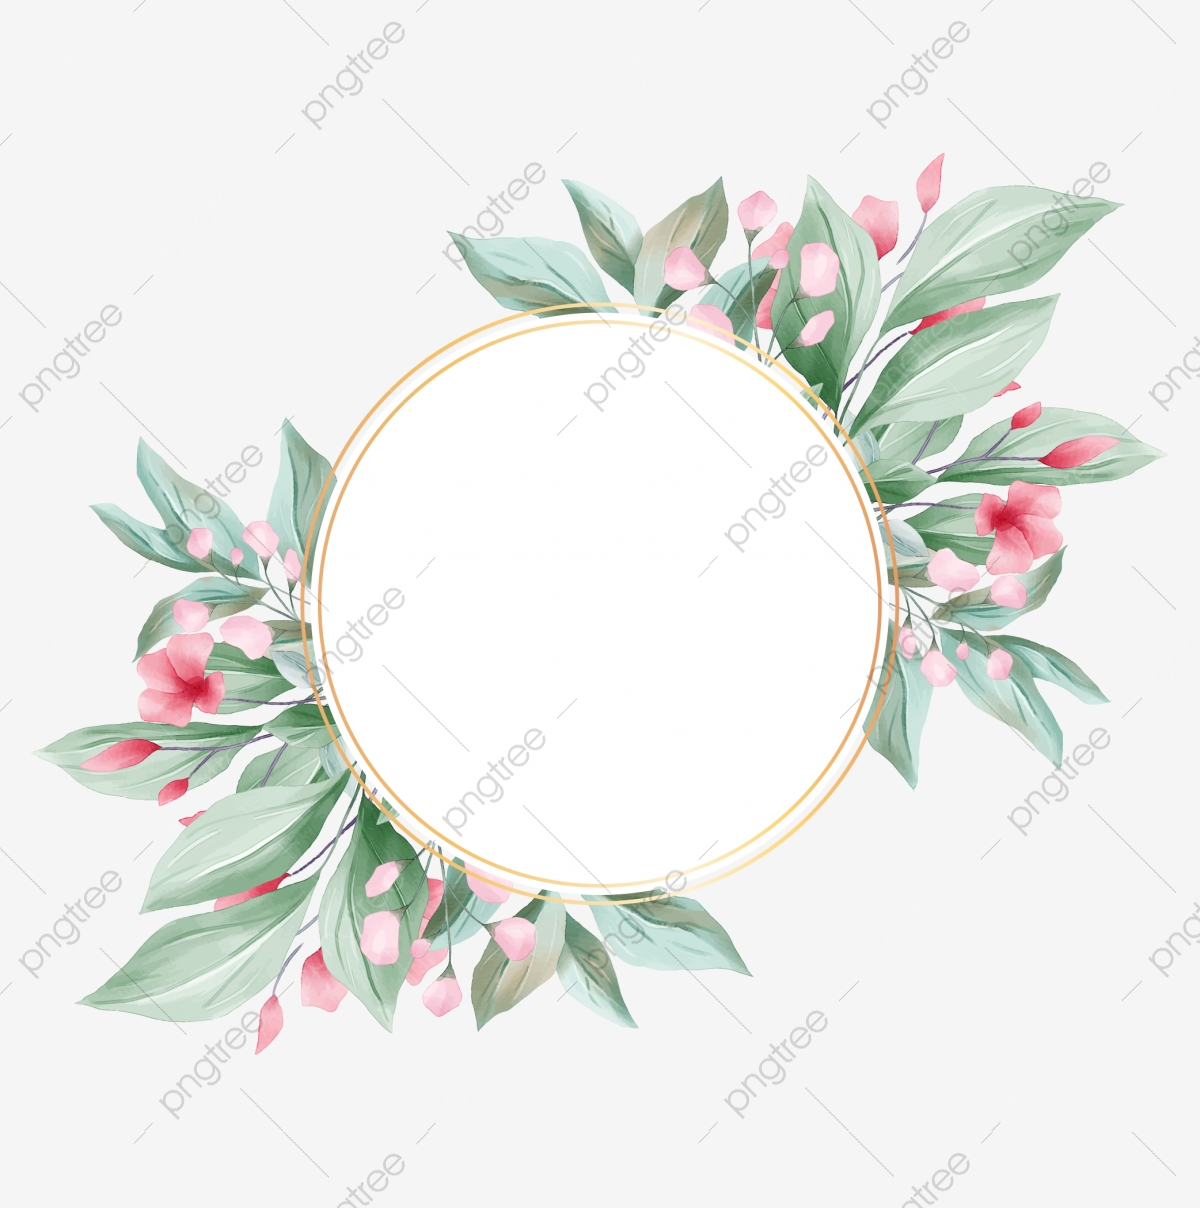 Romantic Round Floral Frame With Elegant Leaves, Wedding ...